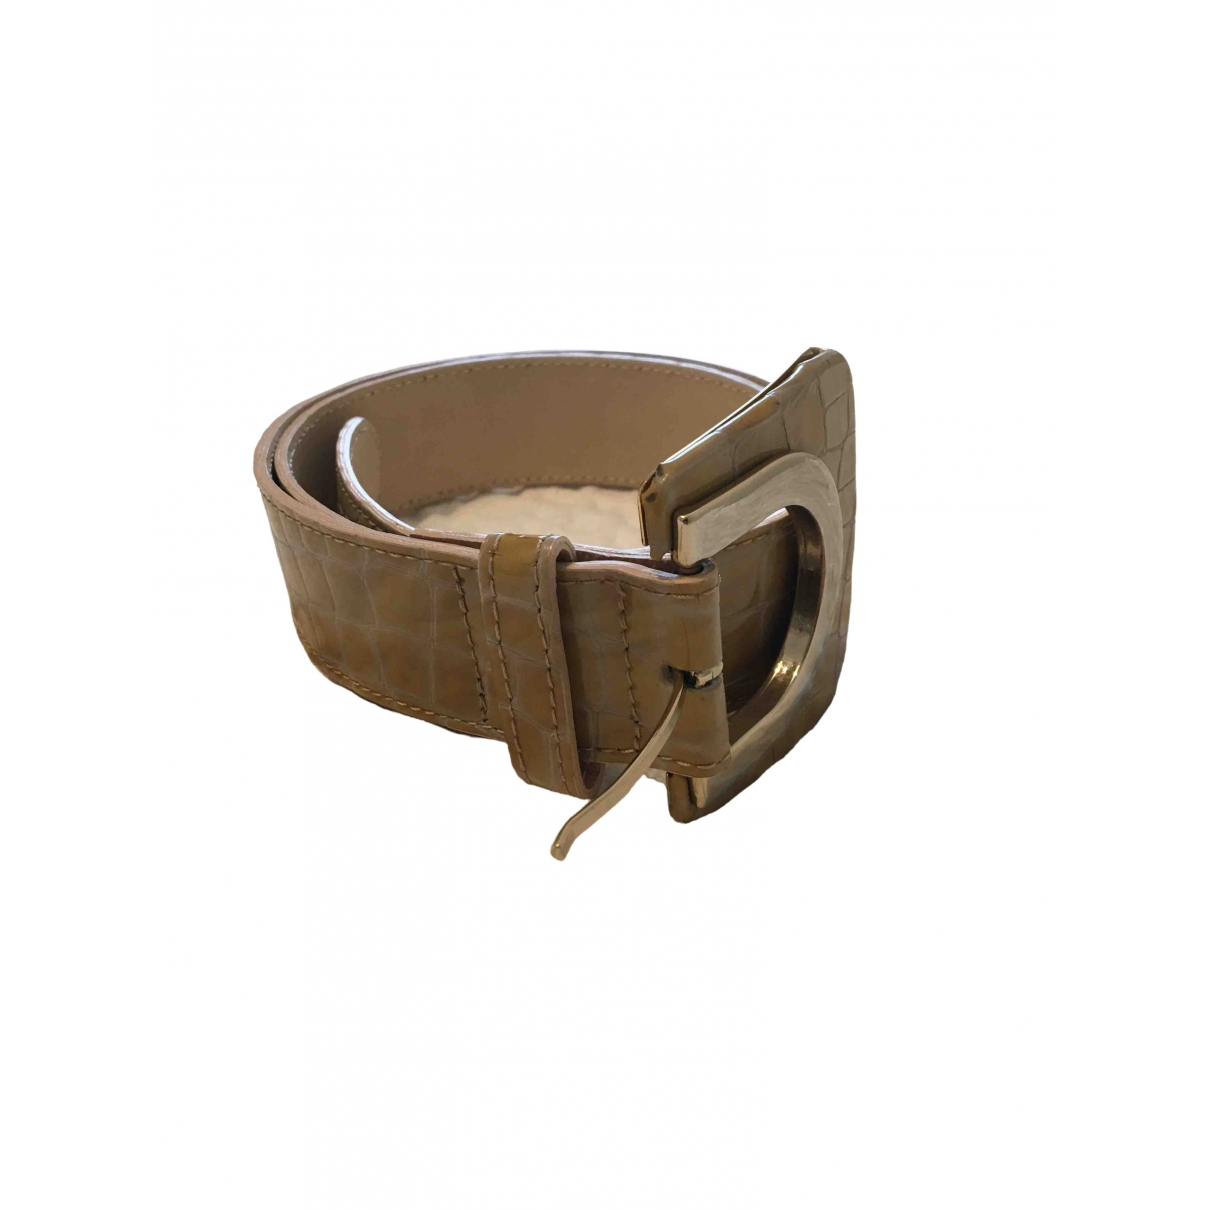 Reiss \N Beige Patent leather belt for Women 29 Inches